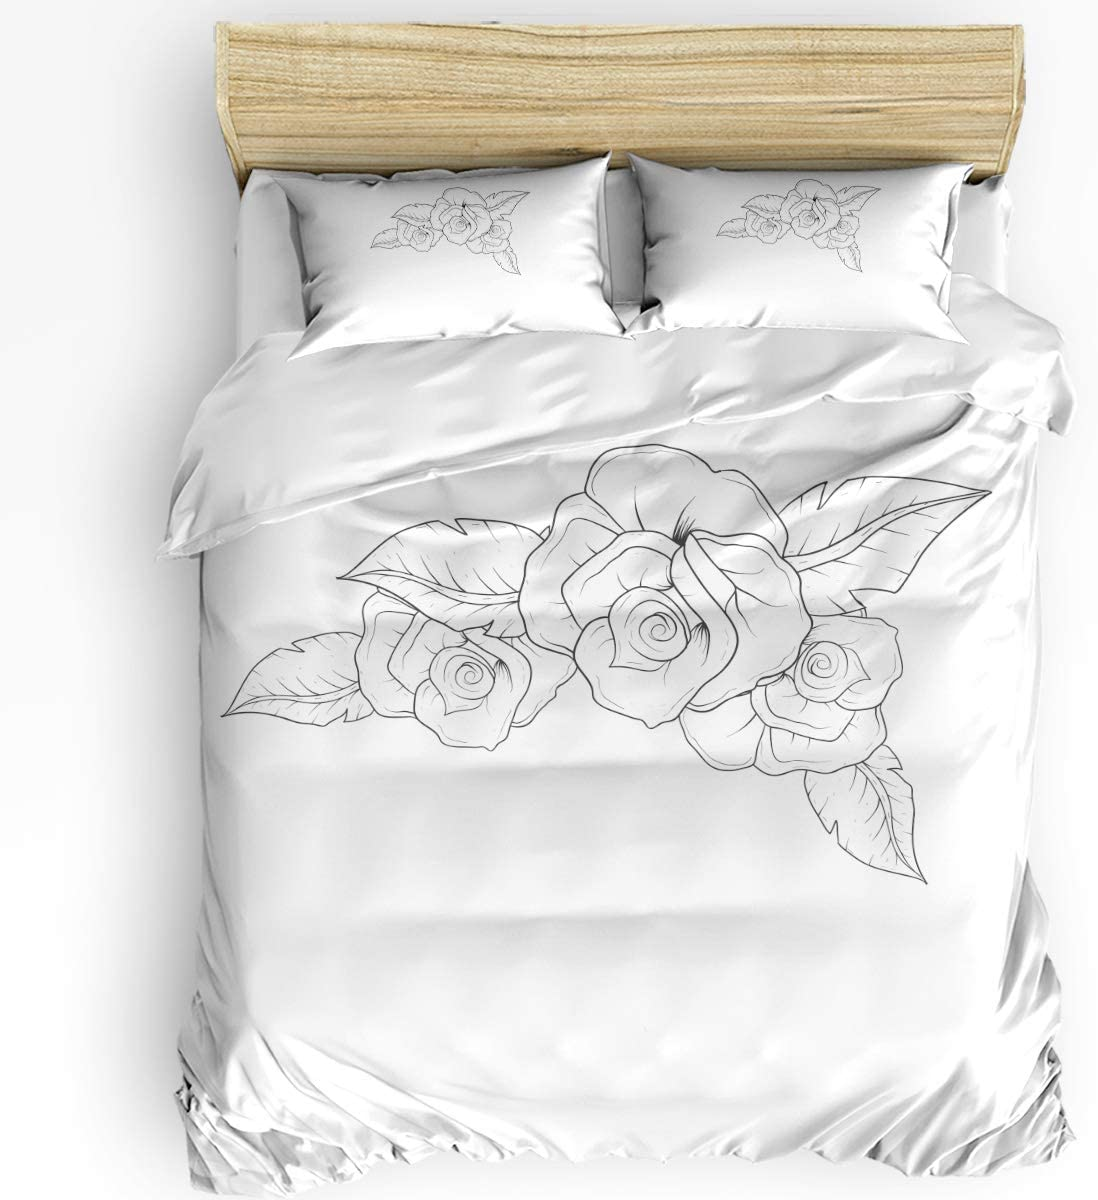 HELLOWINK Duvet Cover 3 Piece Bedding SEAL limited product Size Rose Set Arlington Mall Queen Flowe